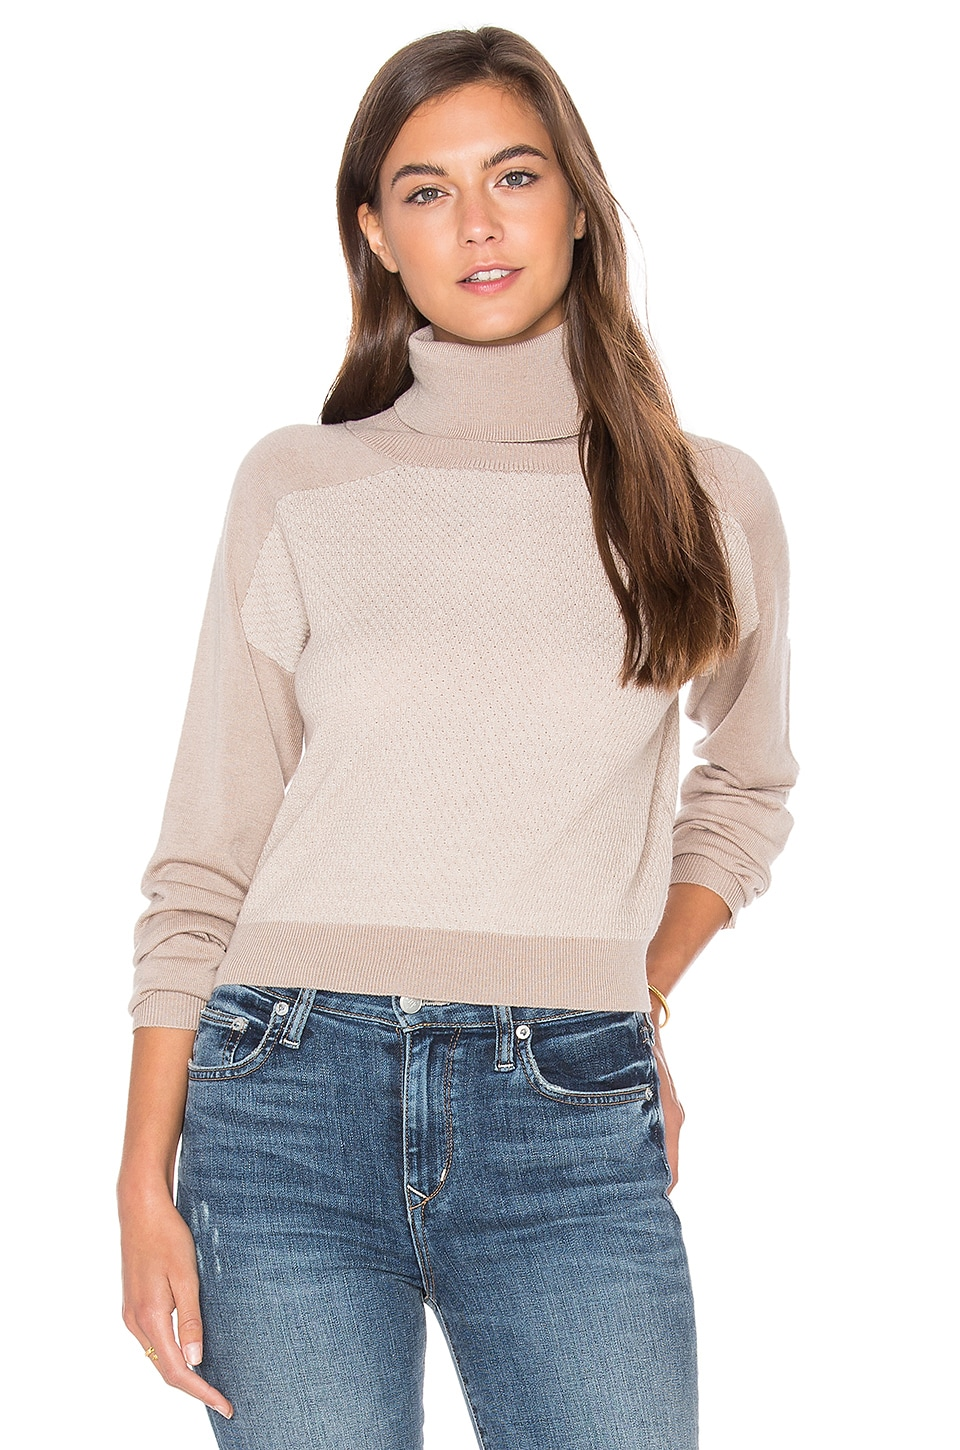 LA Made Trish Cropped Sweater in Camel Combo